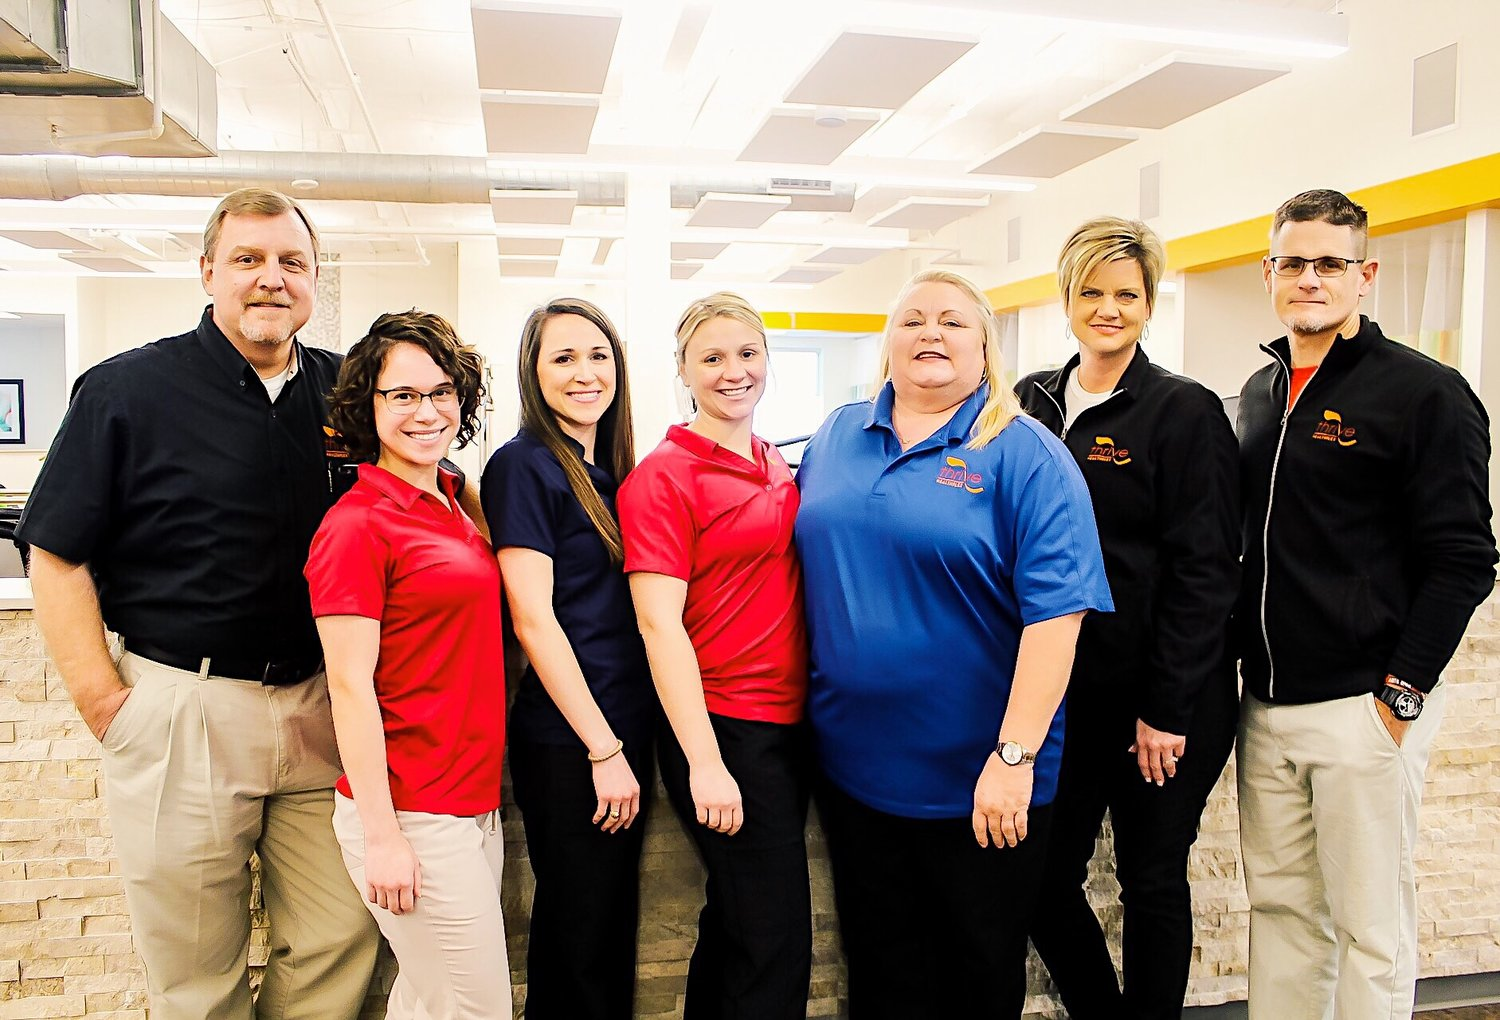 Members of the physical therapy team from Thrive are among the best in South Central Texas.